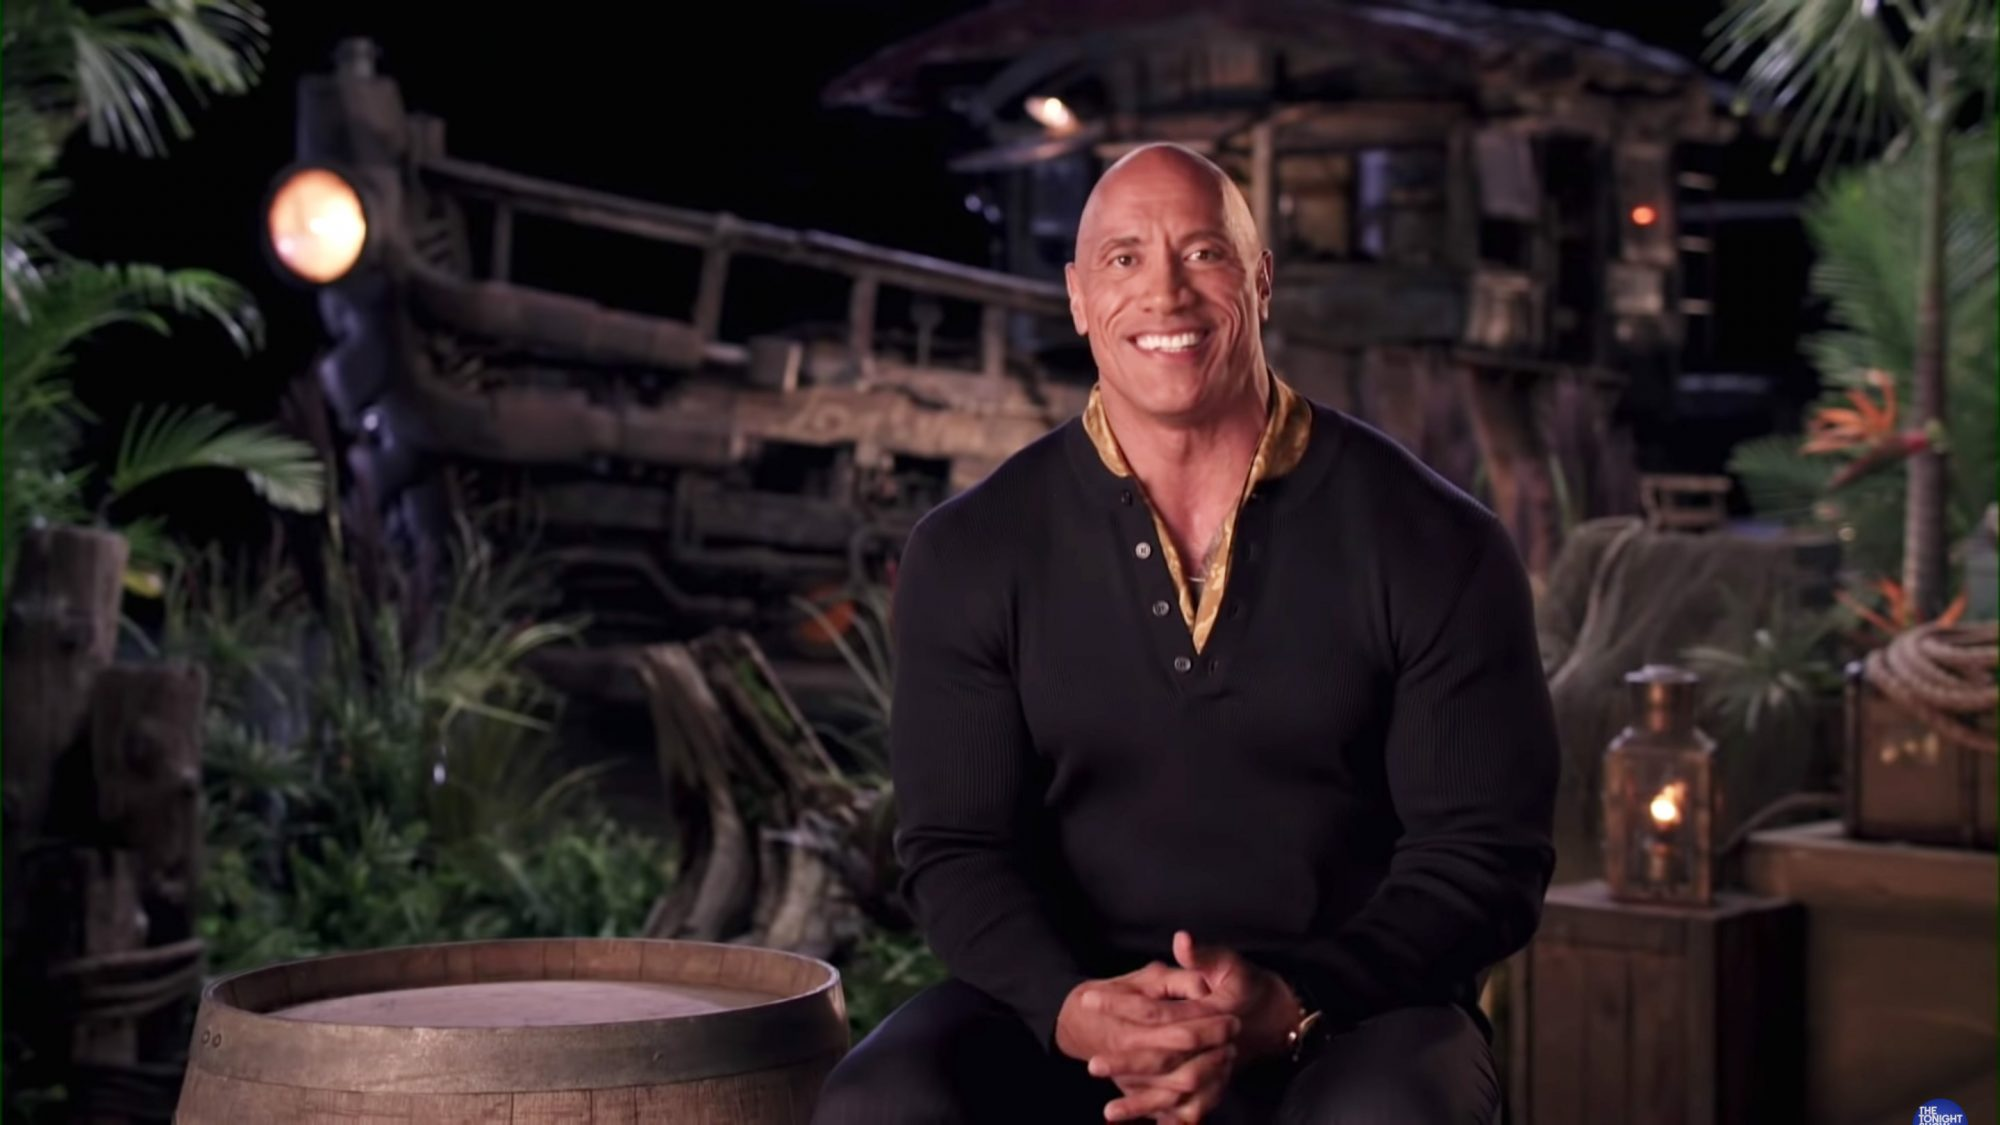 THE TONIGHT SHOW STARRING JIMMY FALLON -- Episode 1492 -- Pictured: (l-r) Actor Dwayne Johnson during an interview with host Jimmy Fallon on Monday, July 19, 2021